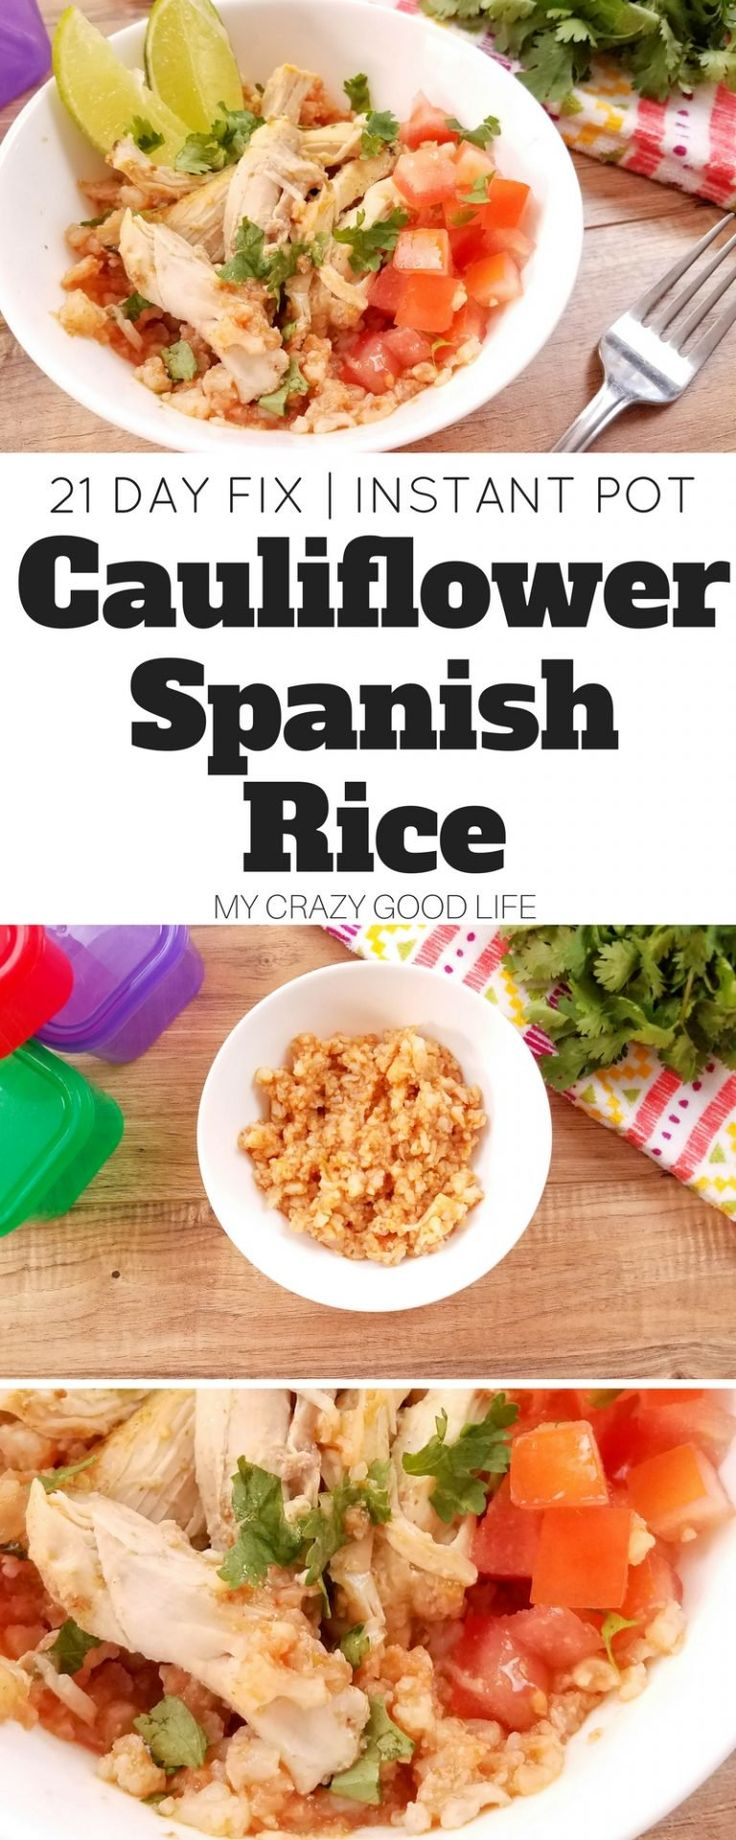 Craving Spanish Rice but need the recipe to be easy? This Instant Pot Spanish Rice is made with cauliflower *and* is 21 Day Fix friendly! It's the best of both worlds! Cauliflower Spanish Rice   21 Day Fix Spanish Rice   Instant Pot Spanish Rice